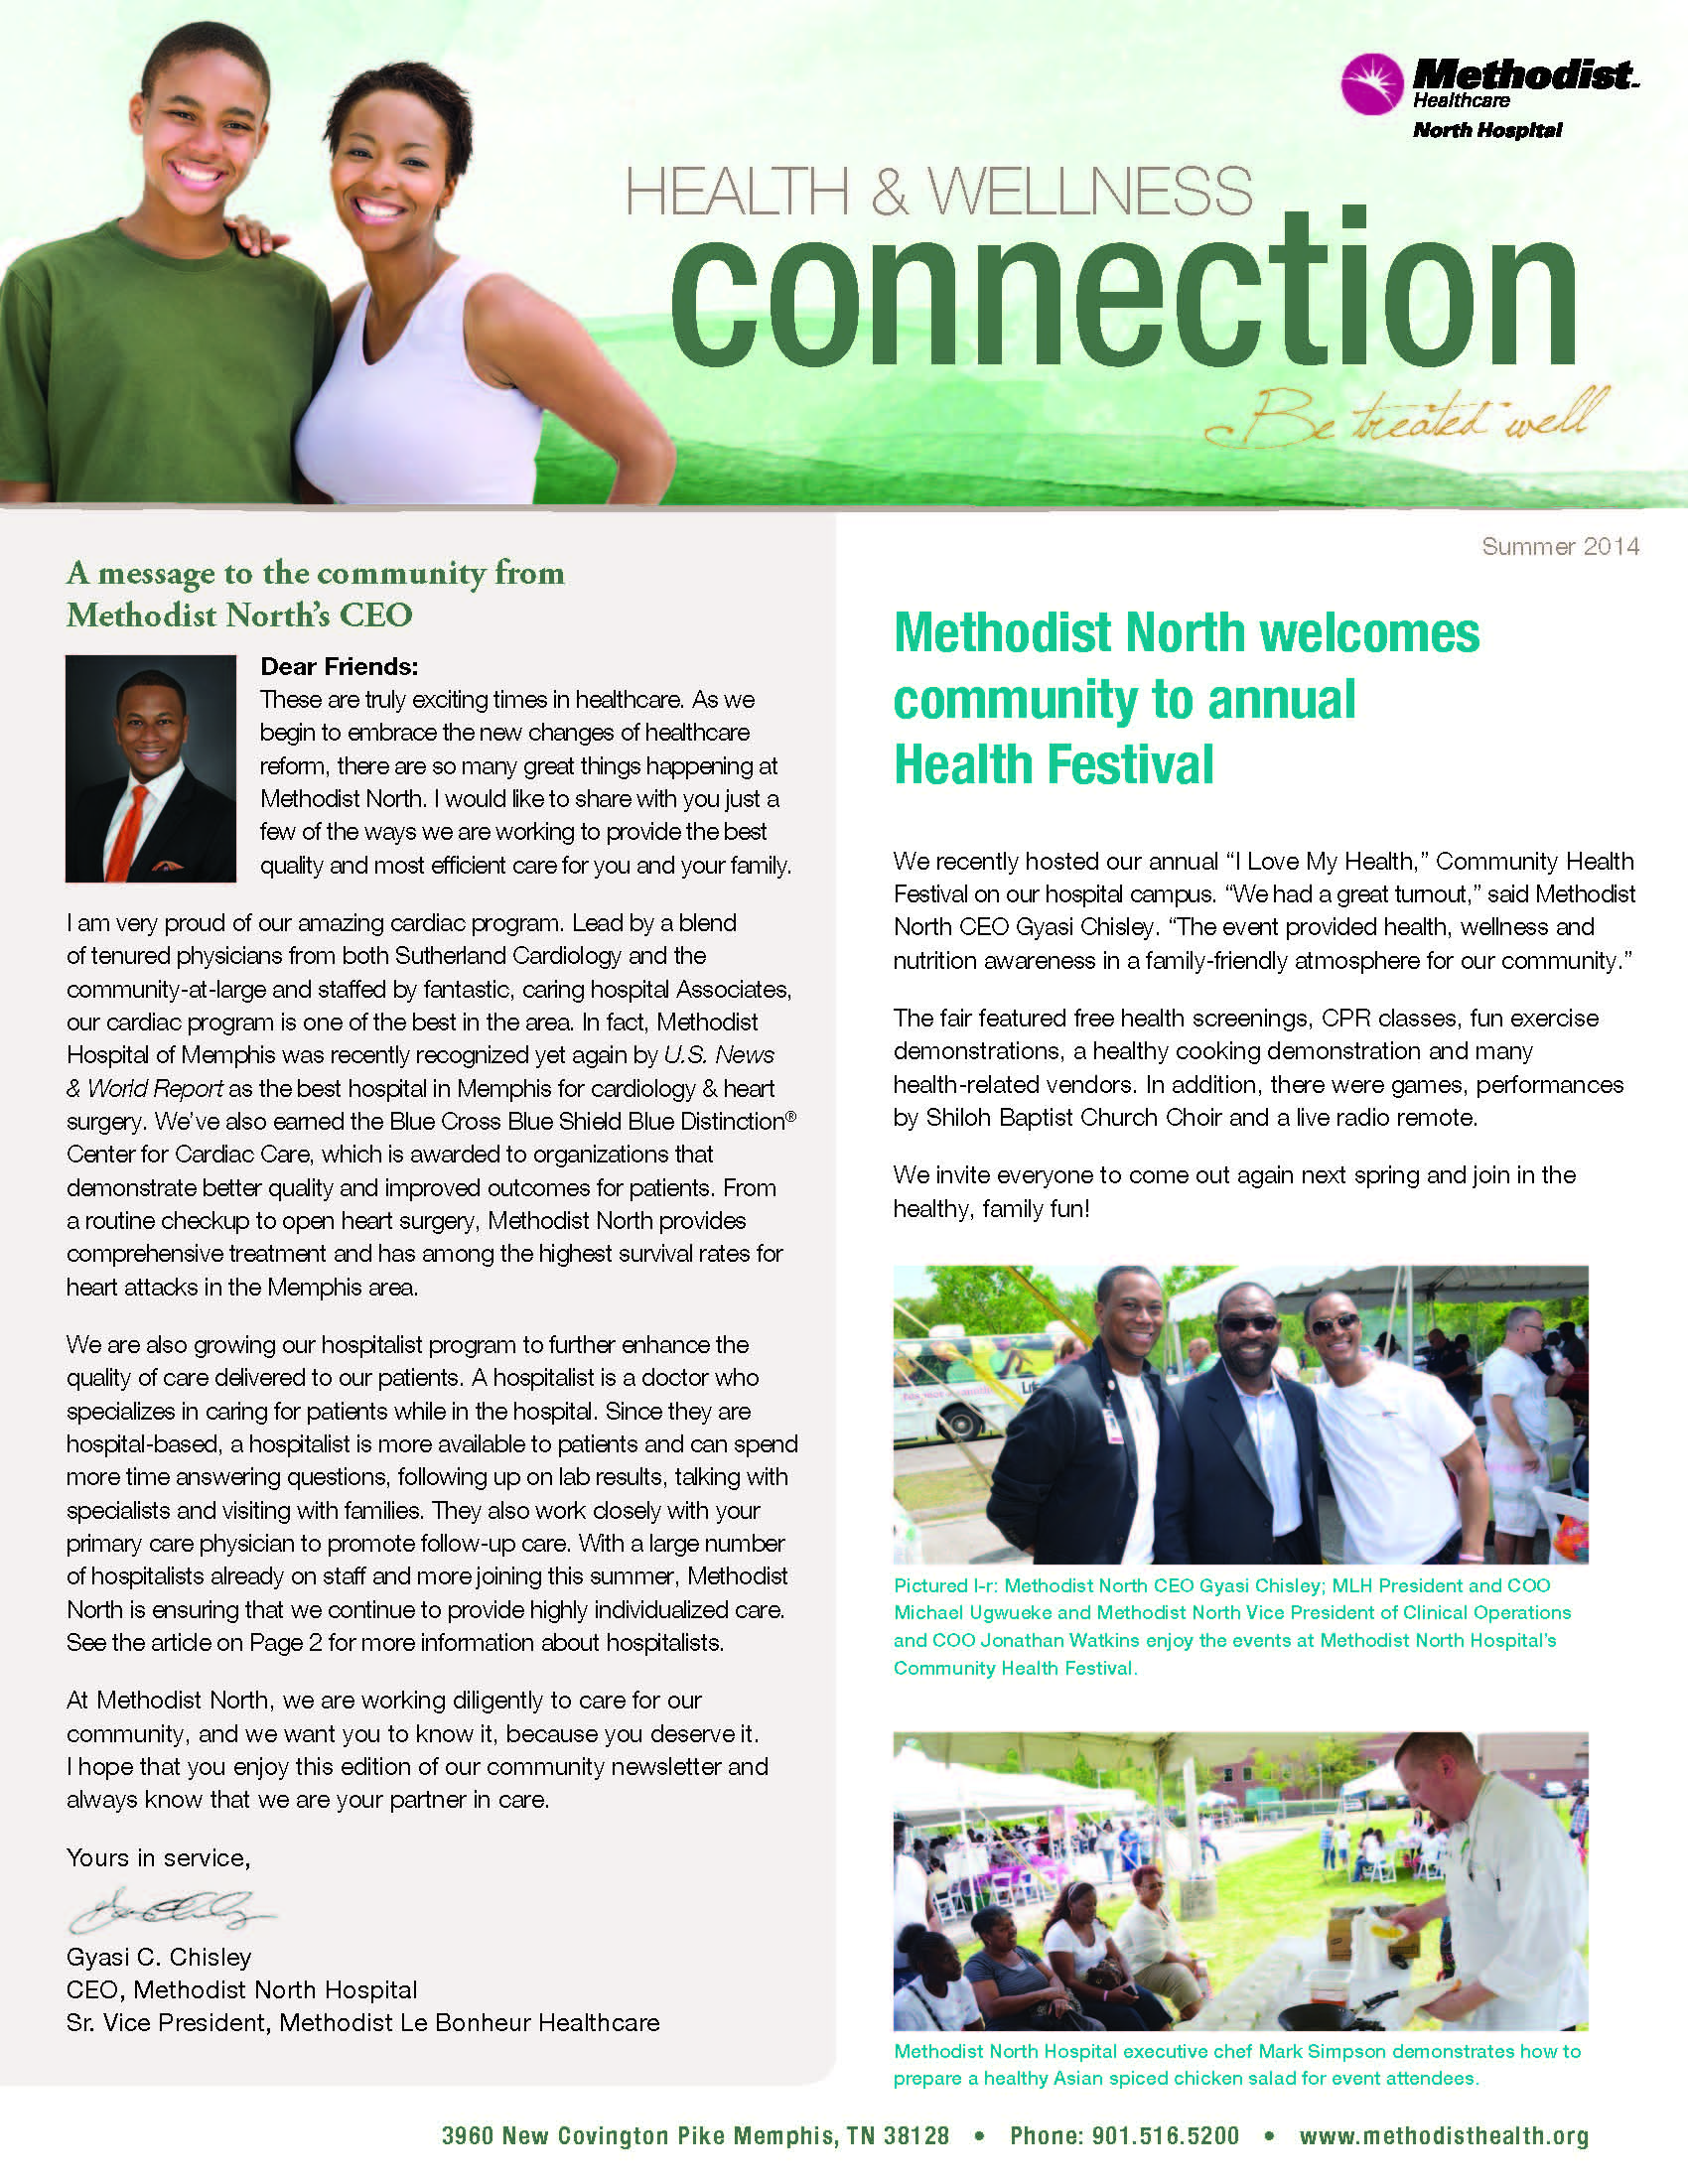 Methodist North Summer 2014 Newsletter